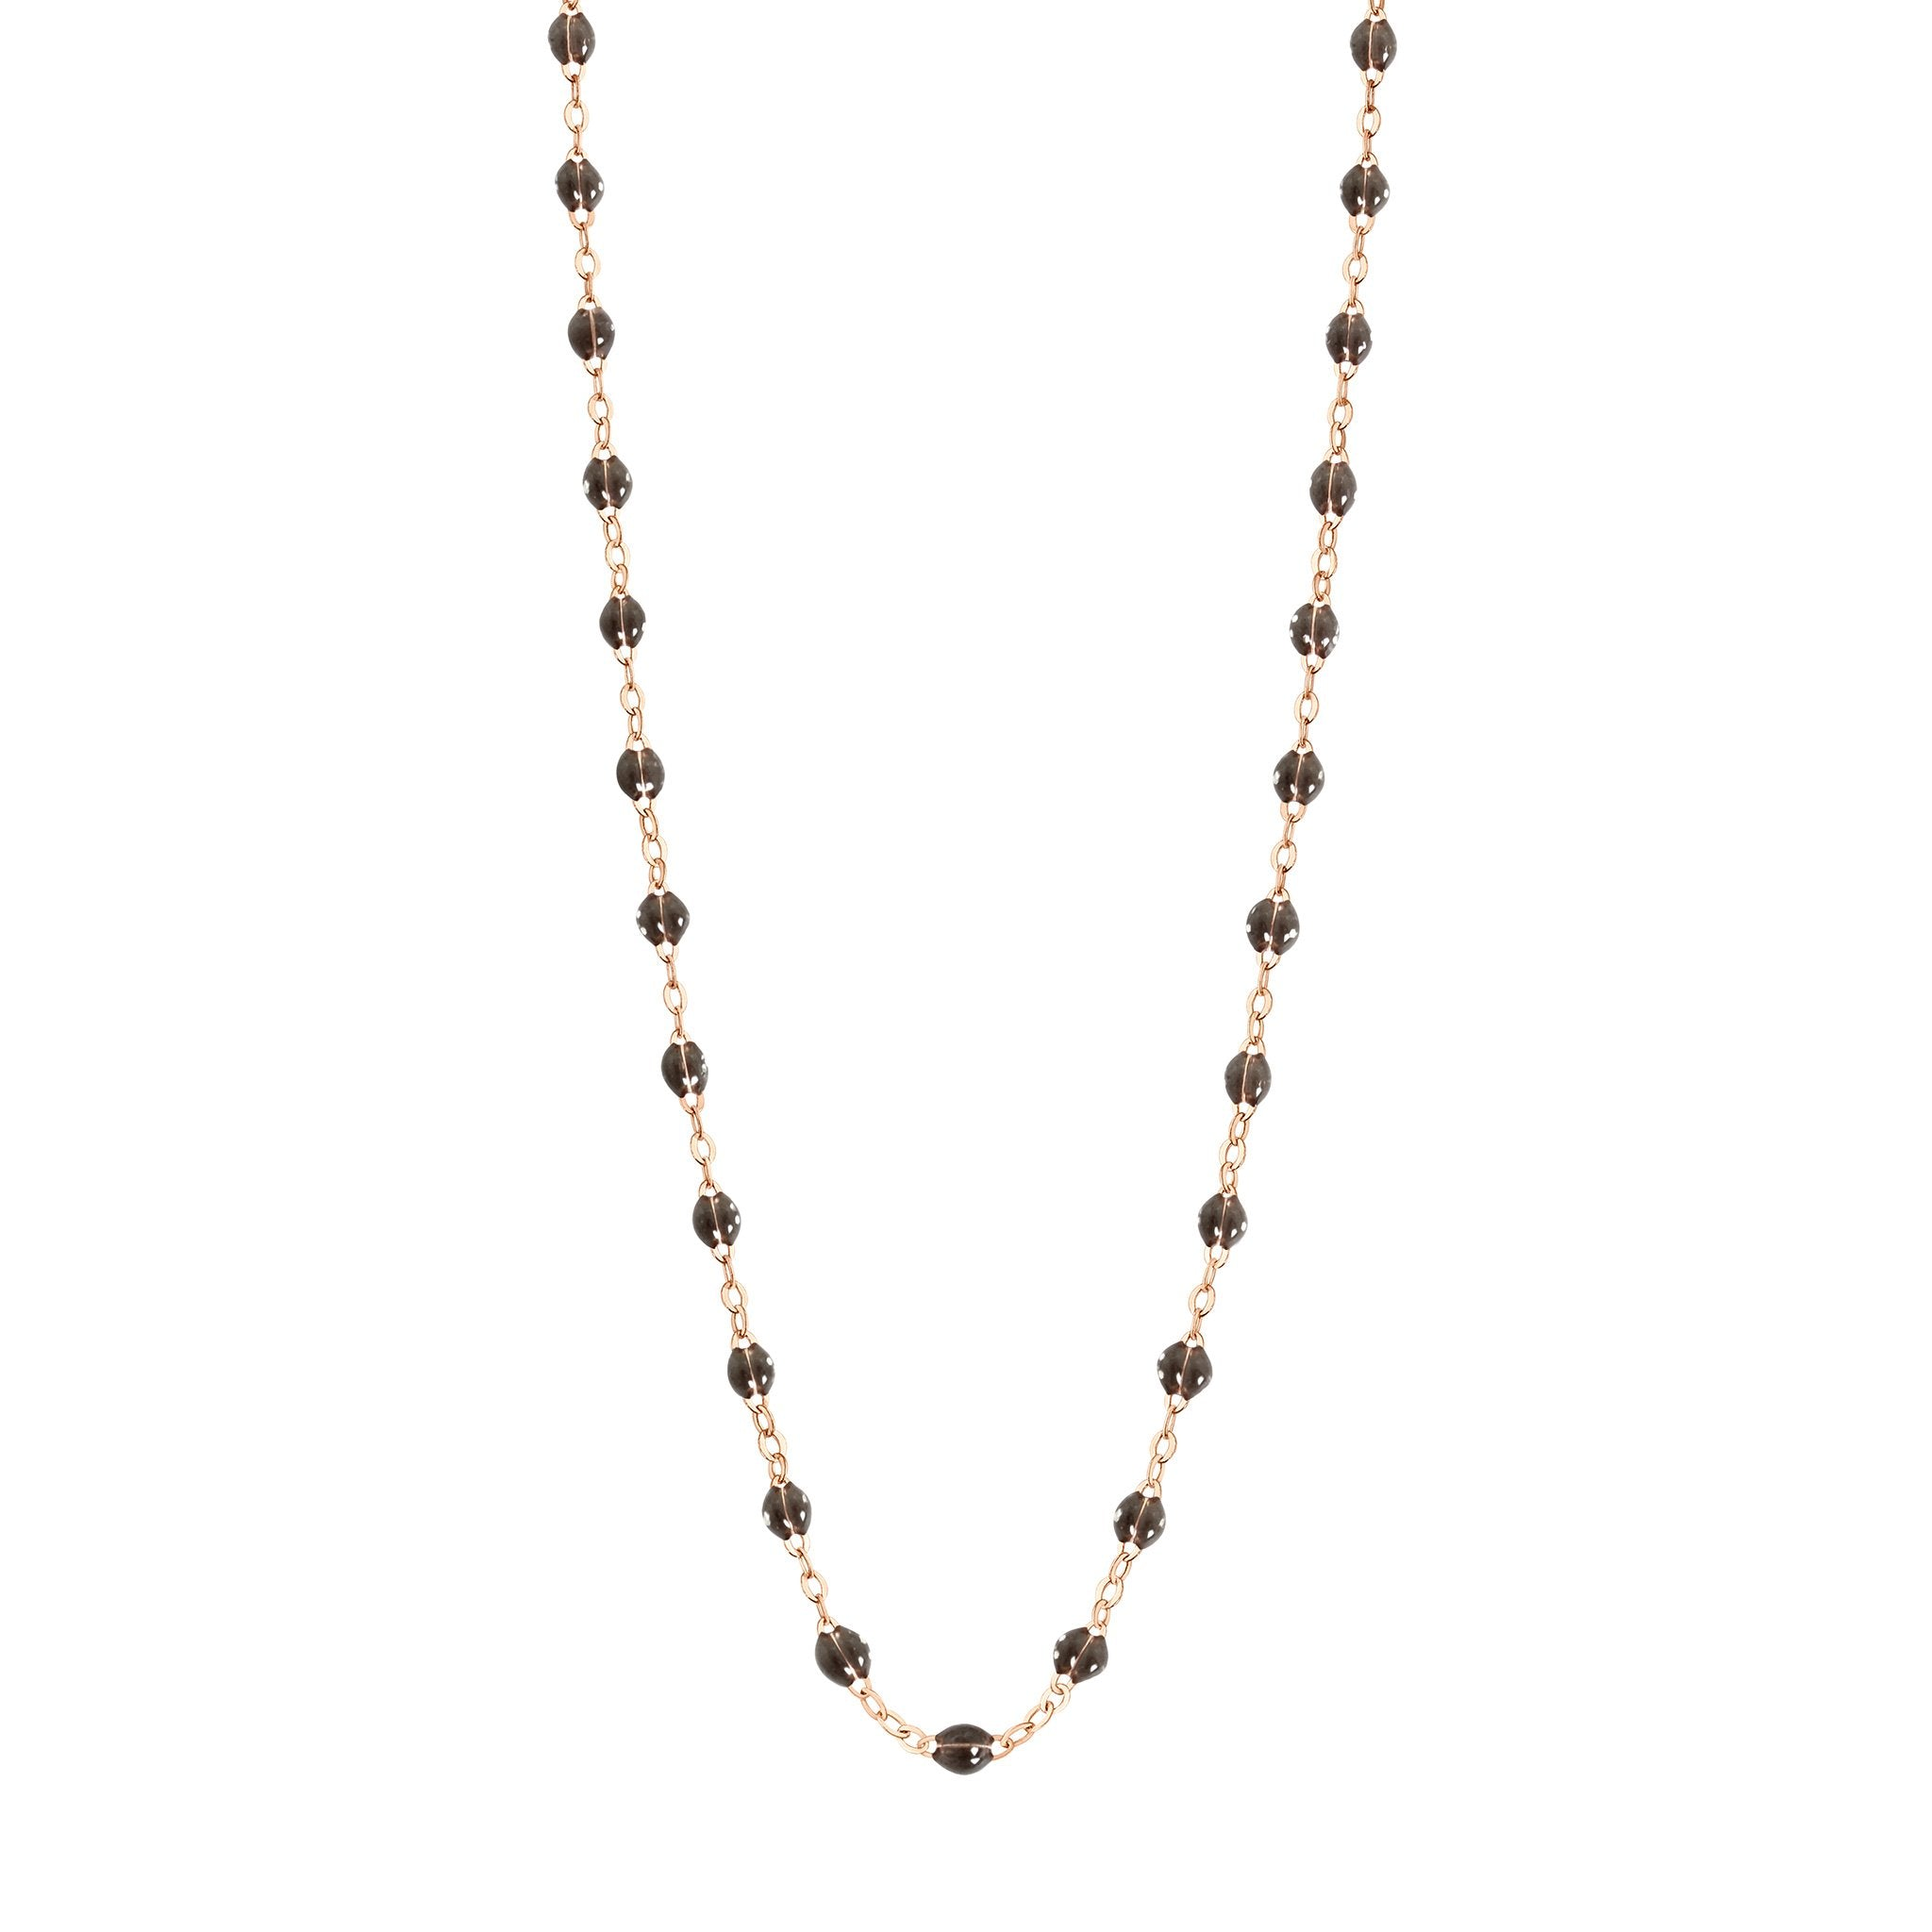 Gigi Clozeau - Classic Gigi Quartz Necklace, Rose Gold, 16.5""